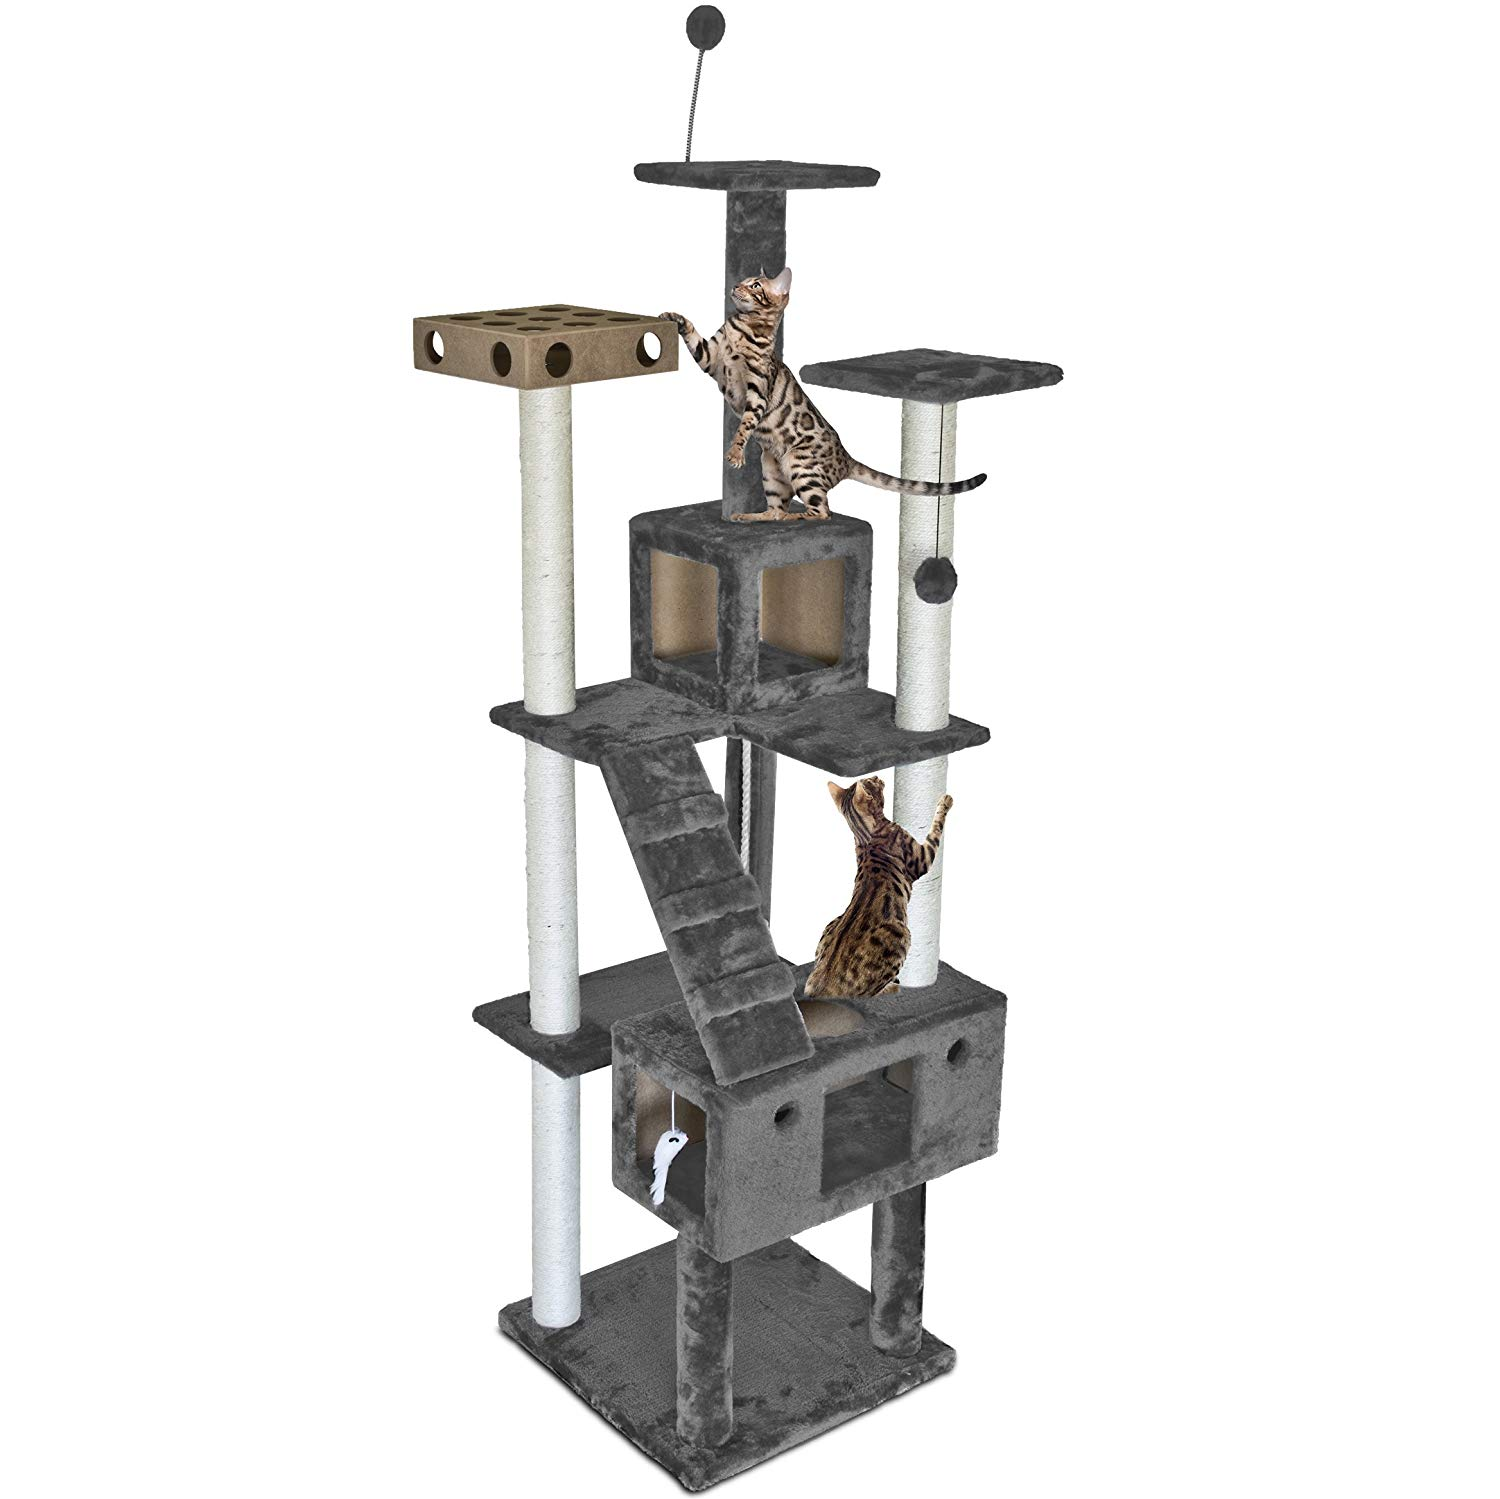 FurHaven Tiger Touch Cat Tree House Furniture